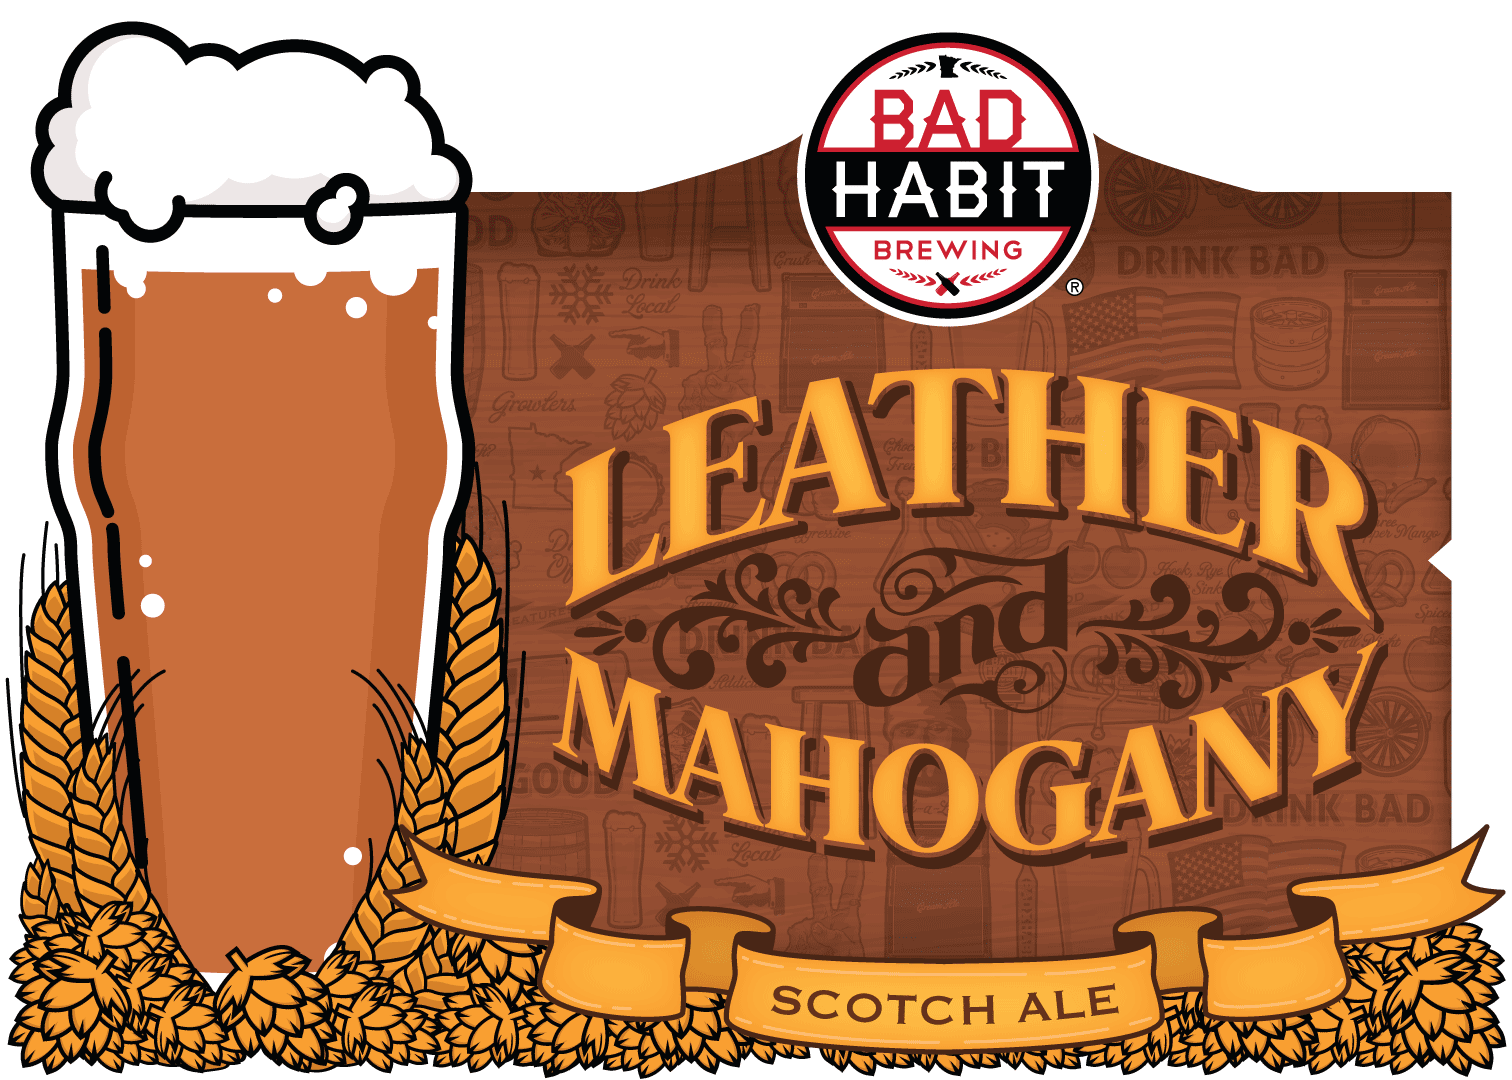 LEATHER &MAHOGANY - Scotch Ale | 6% ABVThe Scotch Ale is malty, with a rich and dominant sweet malt flavor and aroma. Imagine drinking leather bound books and deep dark mahogany woods. This Scotch ale is kind of a big deal.TAPPING THURSDAY AUGUST 23rd